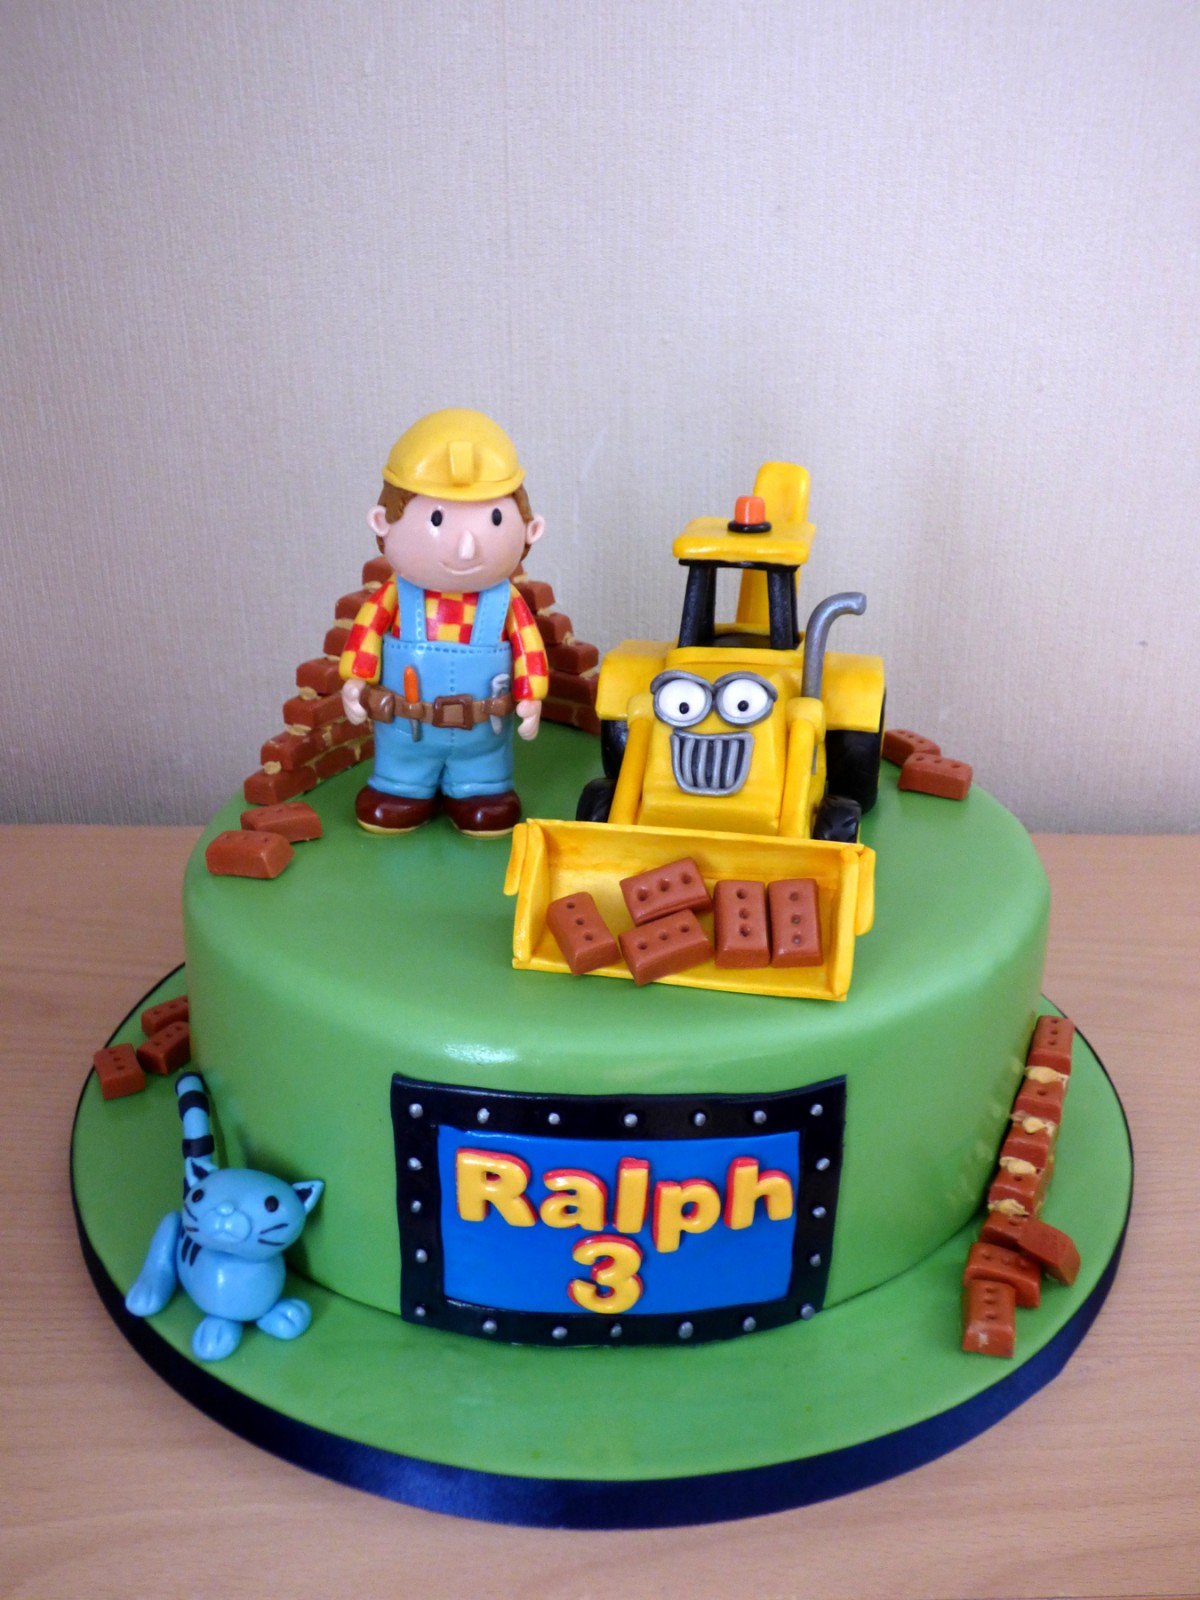 Excellent Bob The Builder And Friends Birthday Cake Susies Cakes Funny Birthday Cards Online Elaedamsfinfo